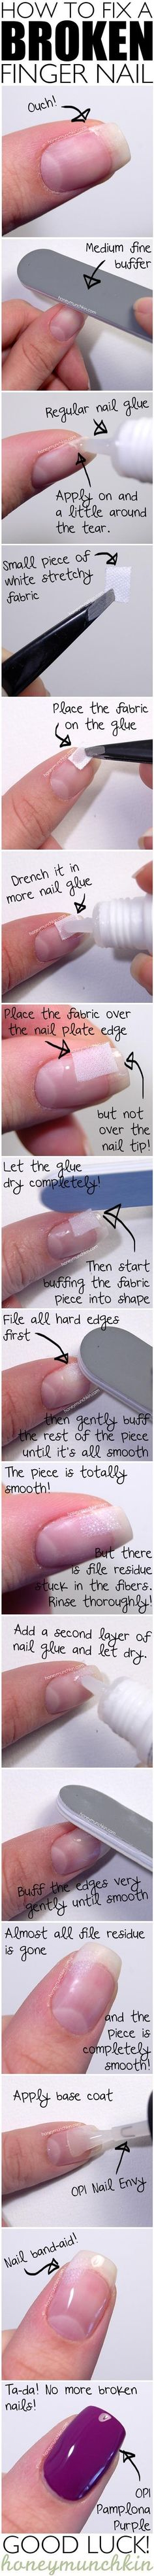 how to fix a broken nail.